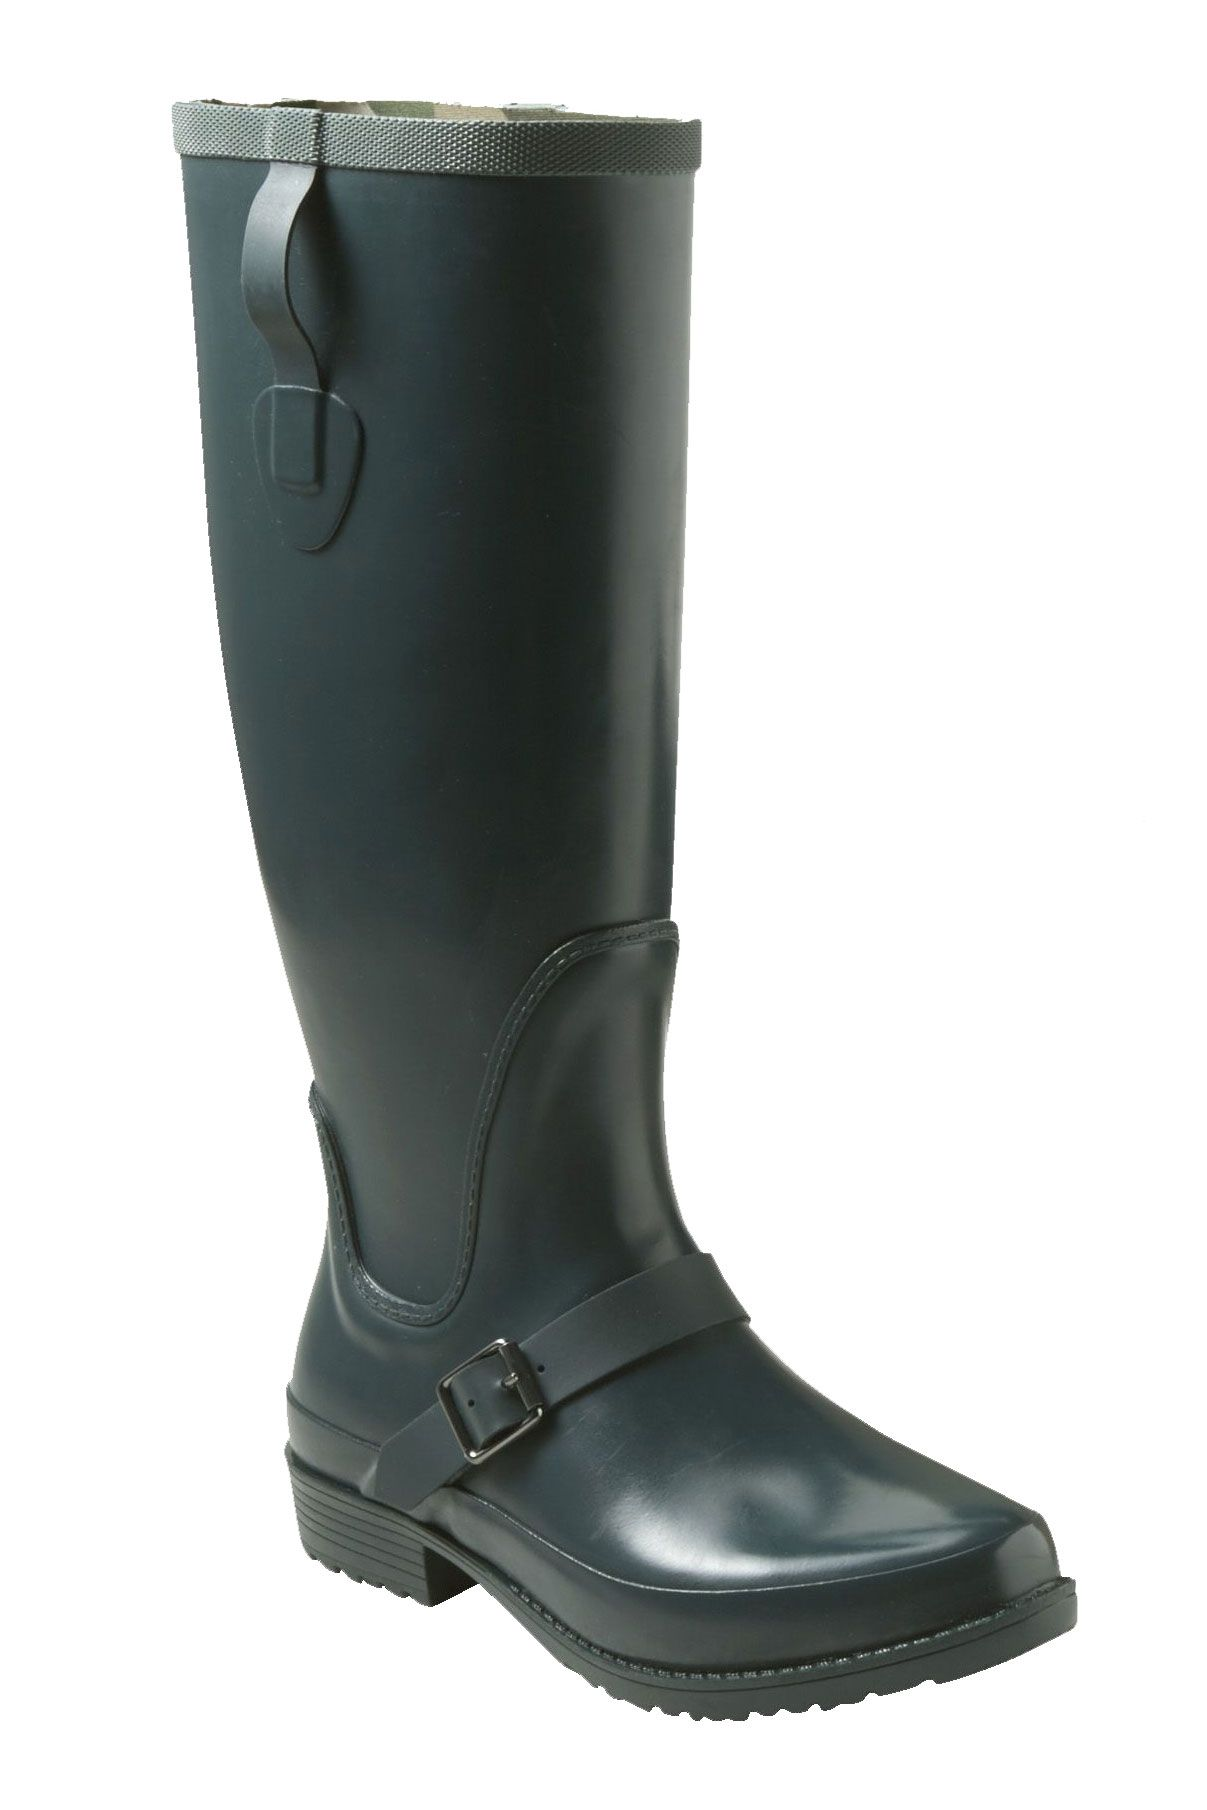 l.l. bean tall wellies